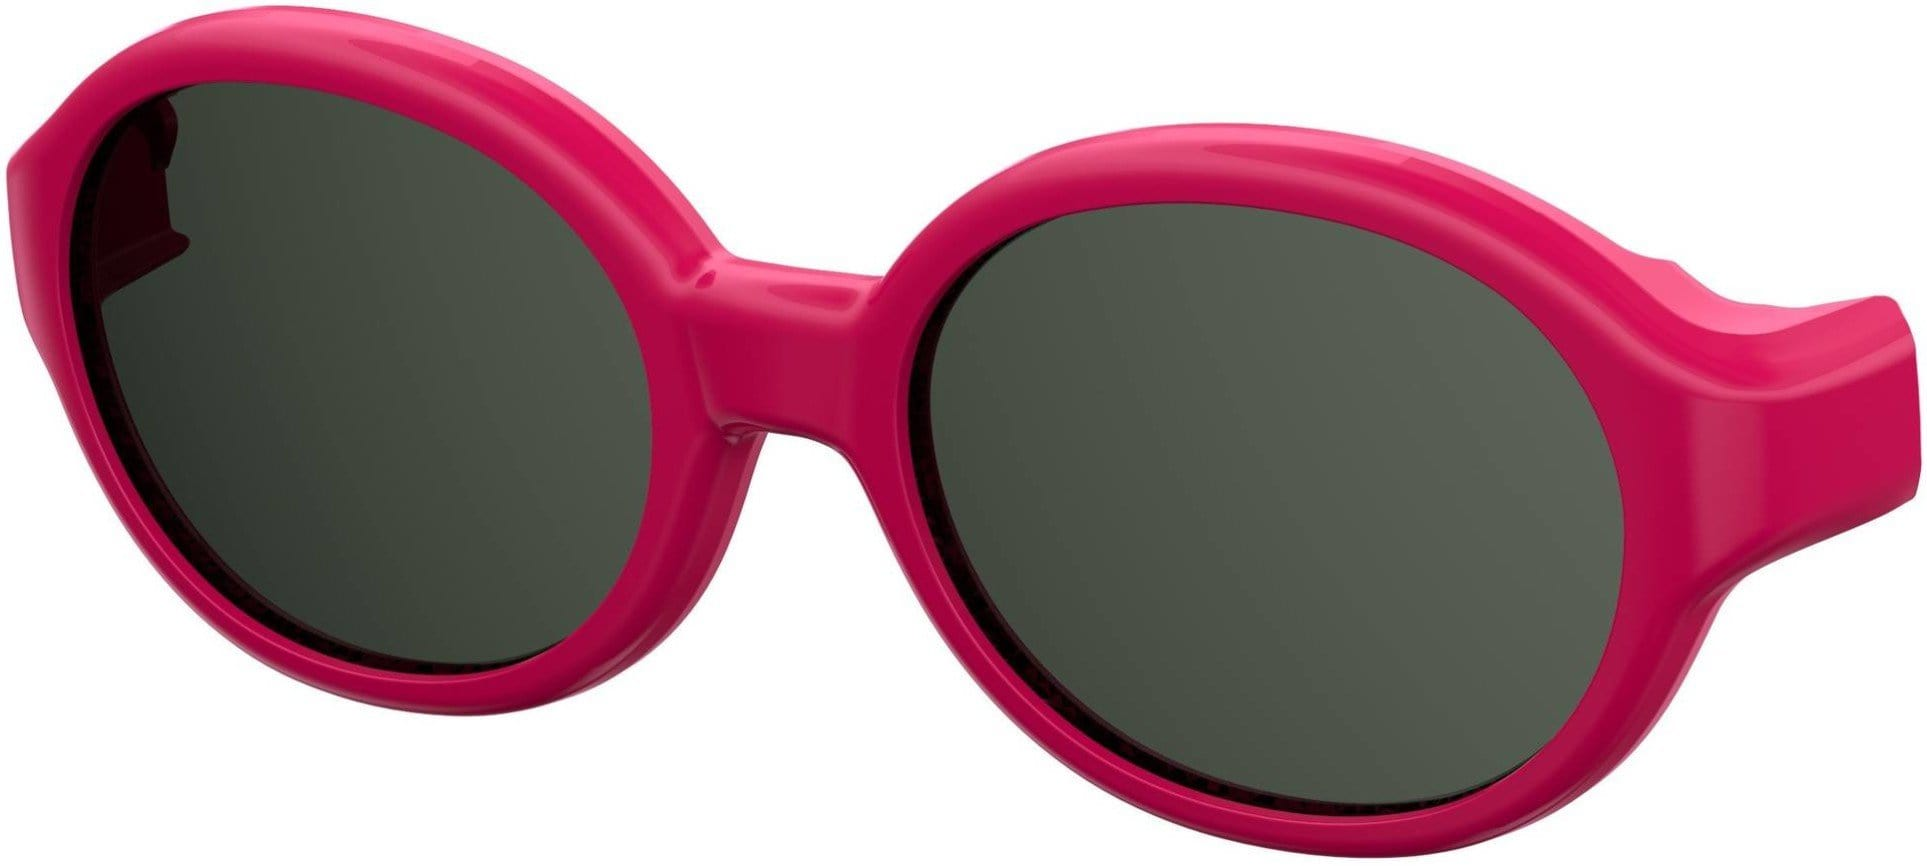 Safilo Safilo Kids SA 0004NCLIP Oval Modified Sunglasses 0MU1-0MU1  Fuchsia (M9 Gray Cp Pz)